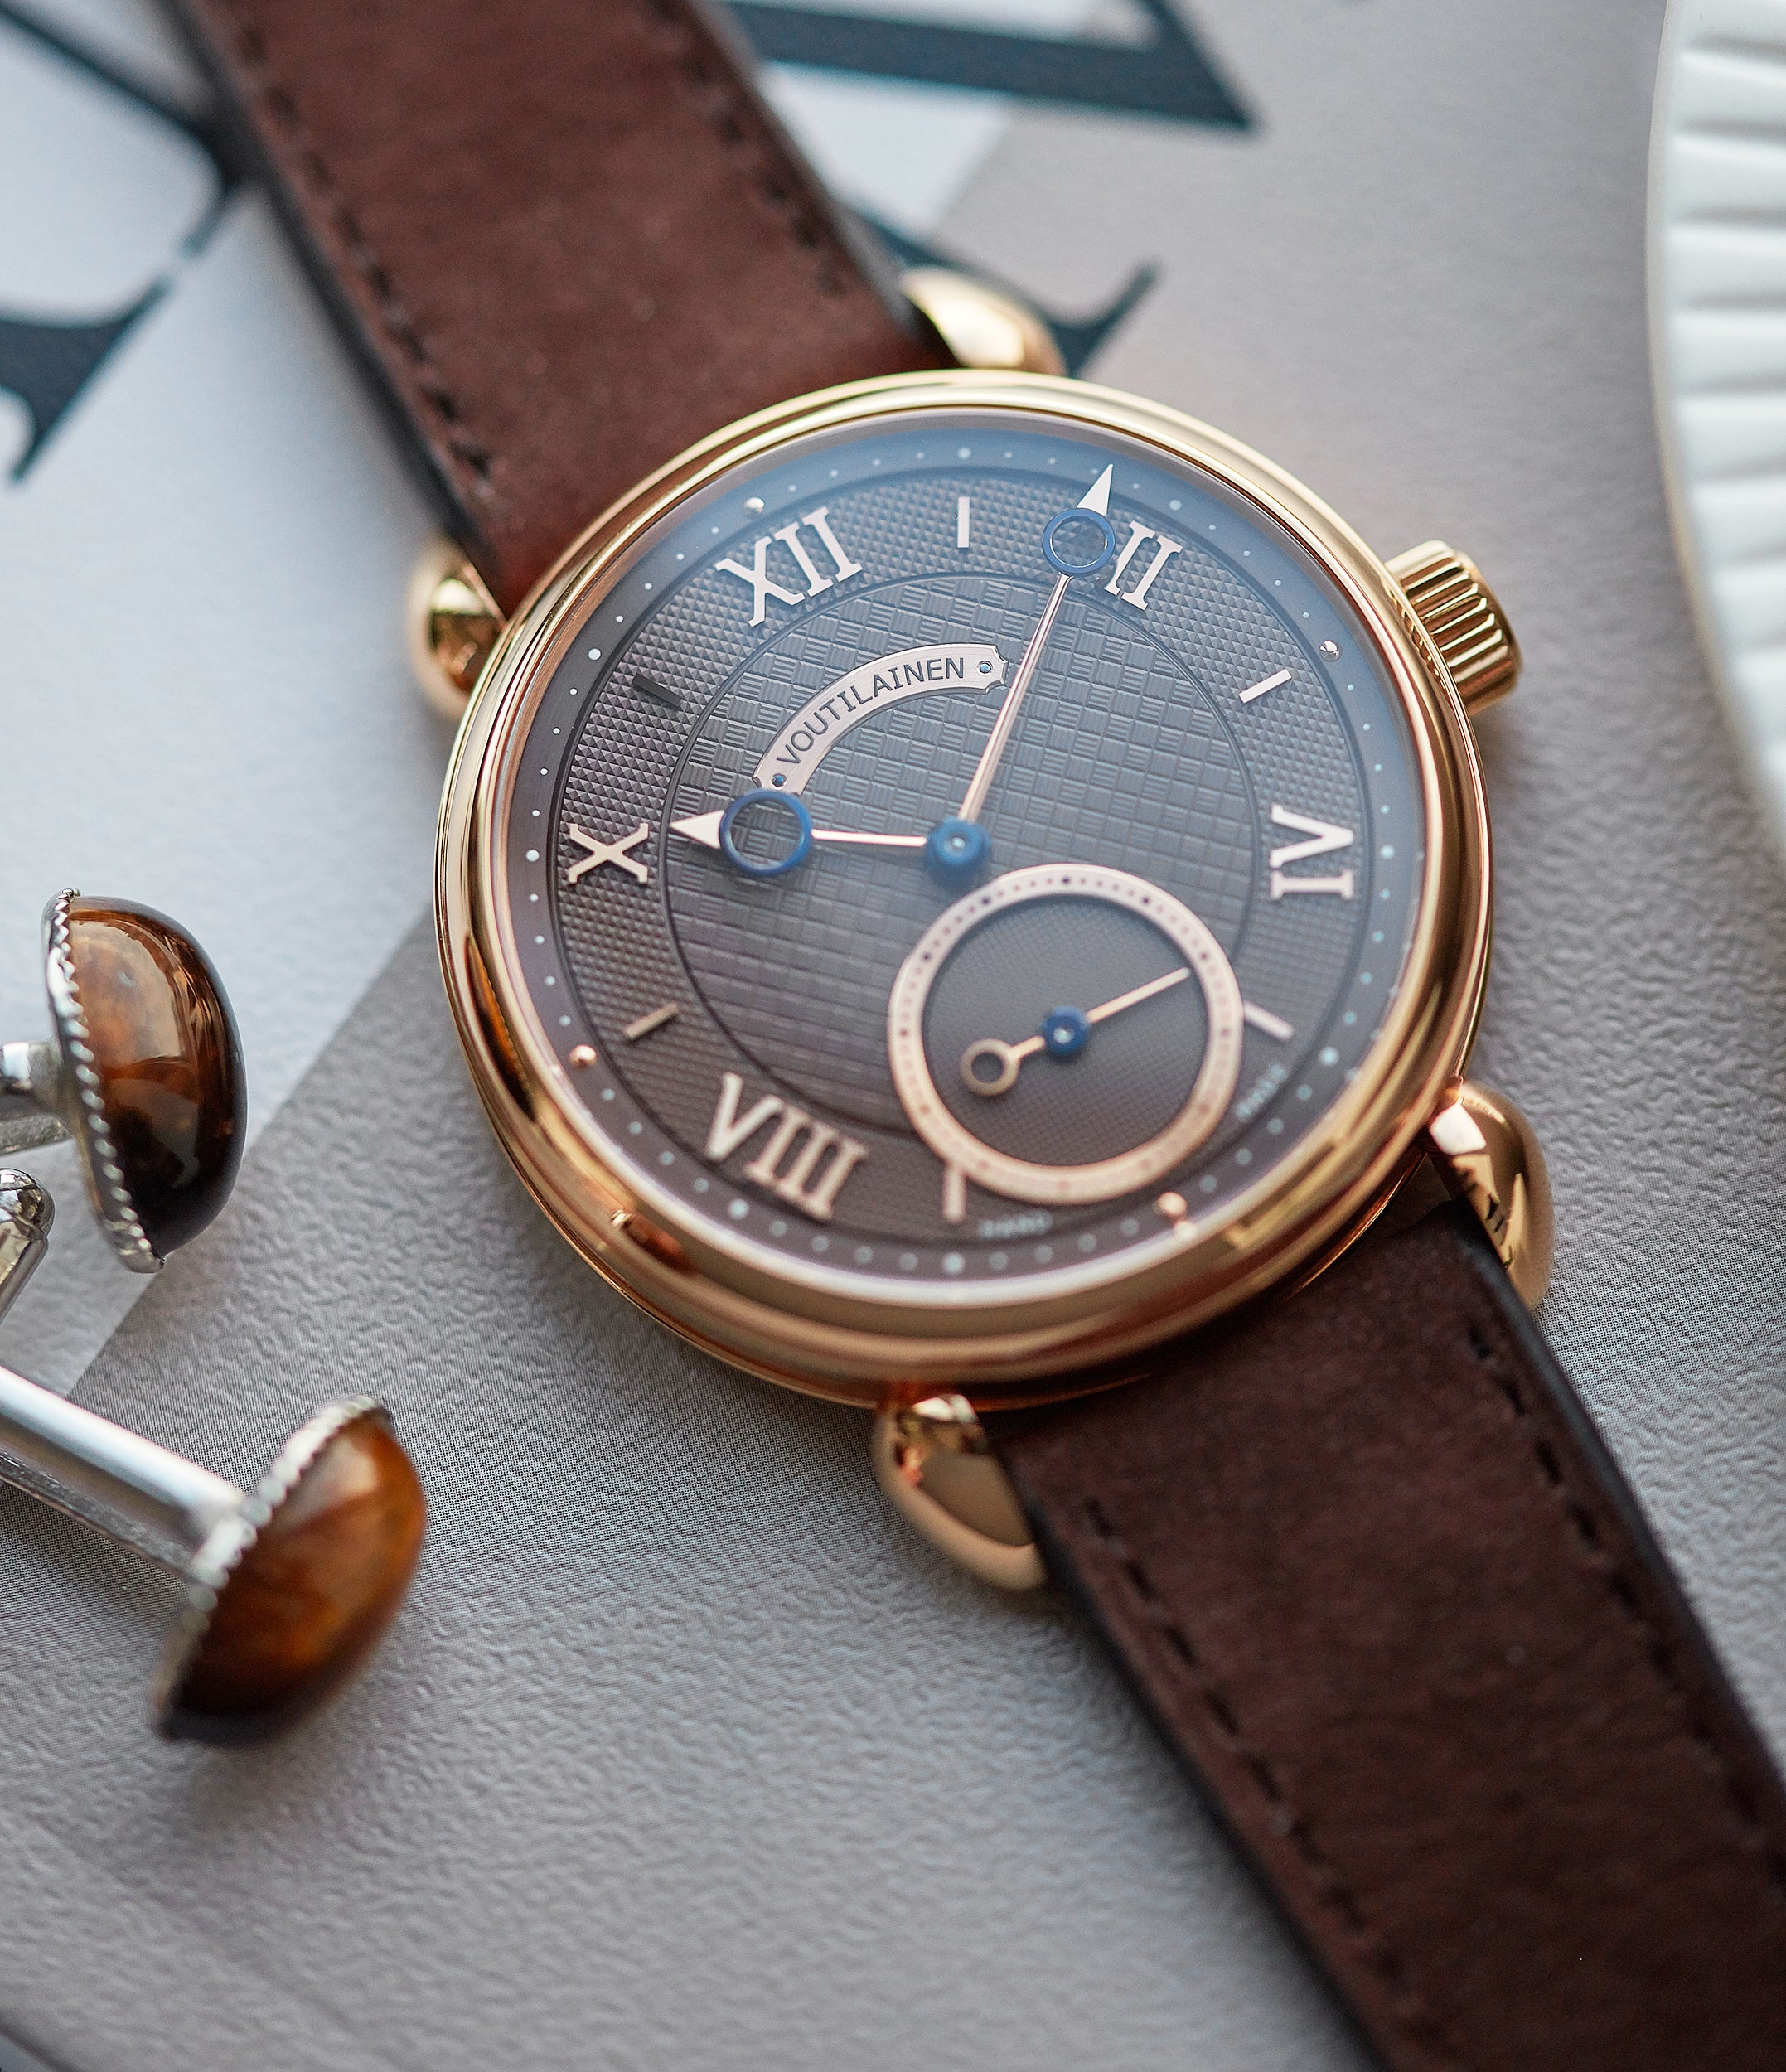 independent watchmaker Voutilainen Vingt-8 Cal. 28 rose gold dress watch with brown guilloche dial for sale at A Collected Man London approved re-seller of preowned Voutilainen watches